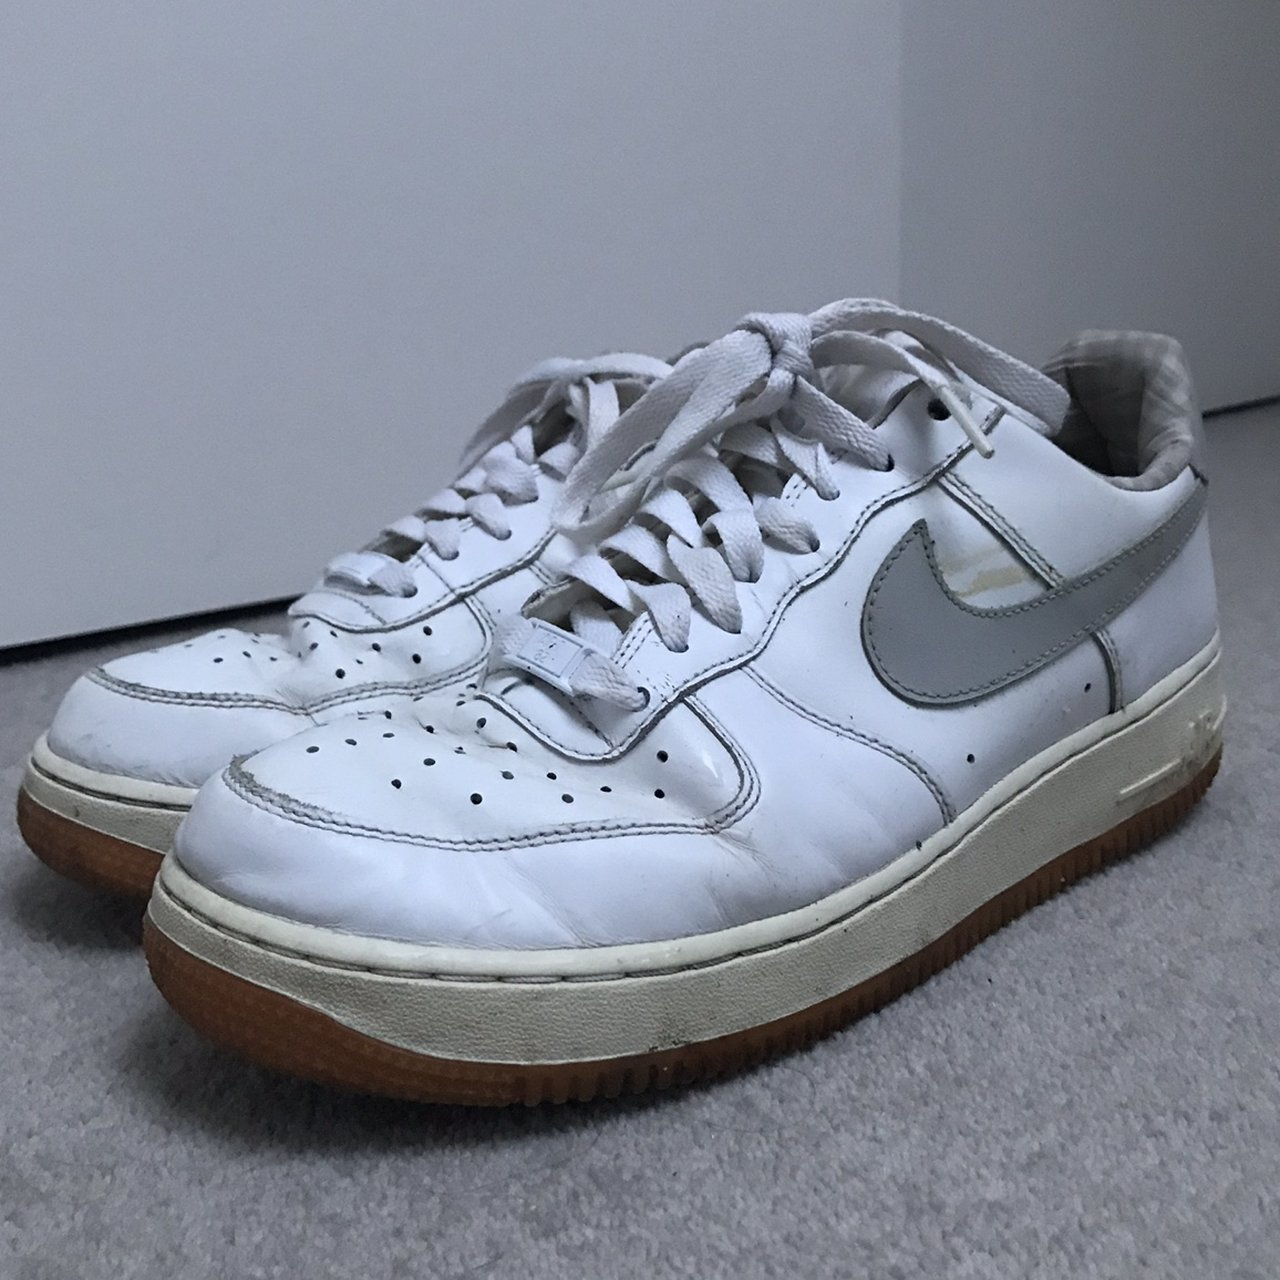 White Air Force 1 with grey tick